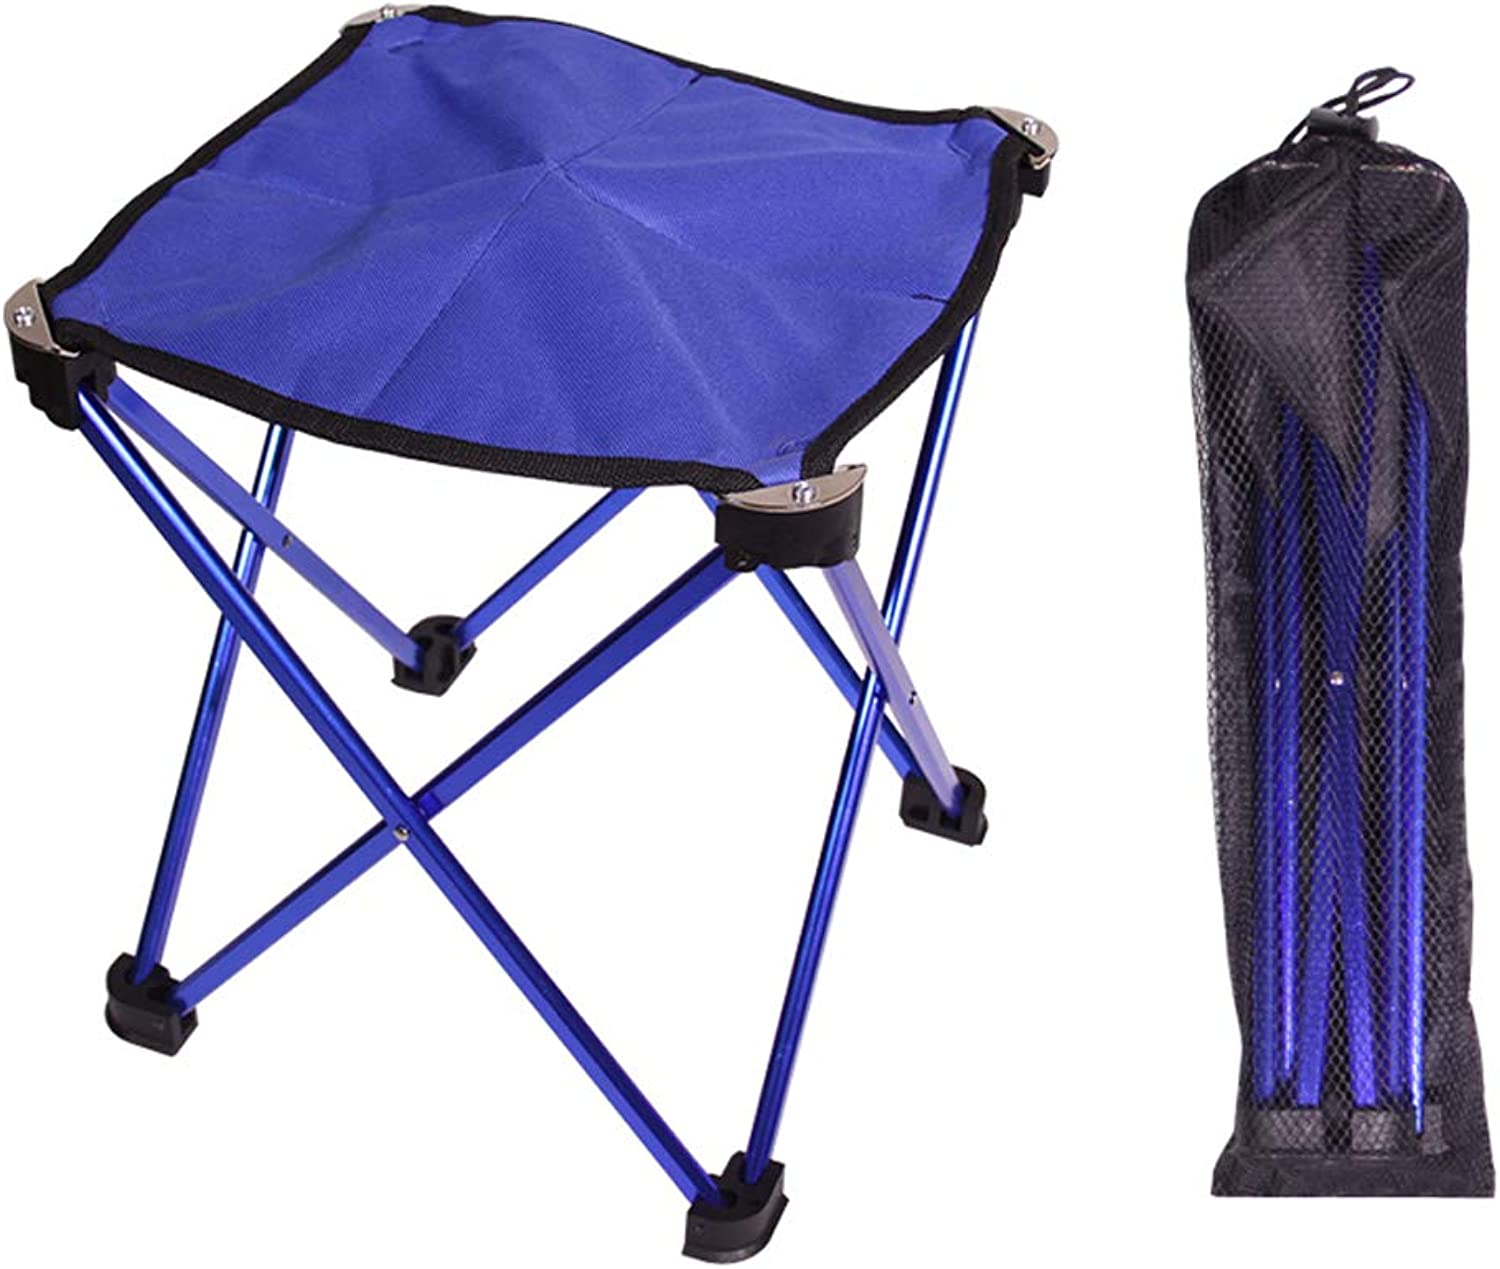 Folding Lightweight Camping Chair Portable Outdoor, Beach BBQ Camp Fishing Picnic Hiking Backyard Backpacking Sports Hunting Chairs, Carry Bag, Small Stool blueee